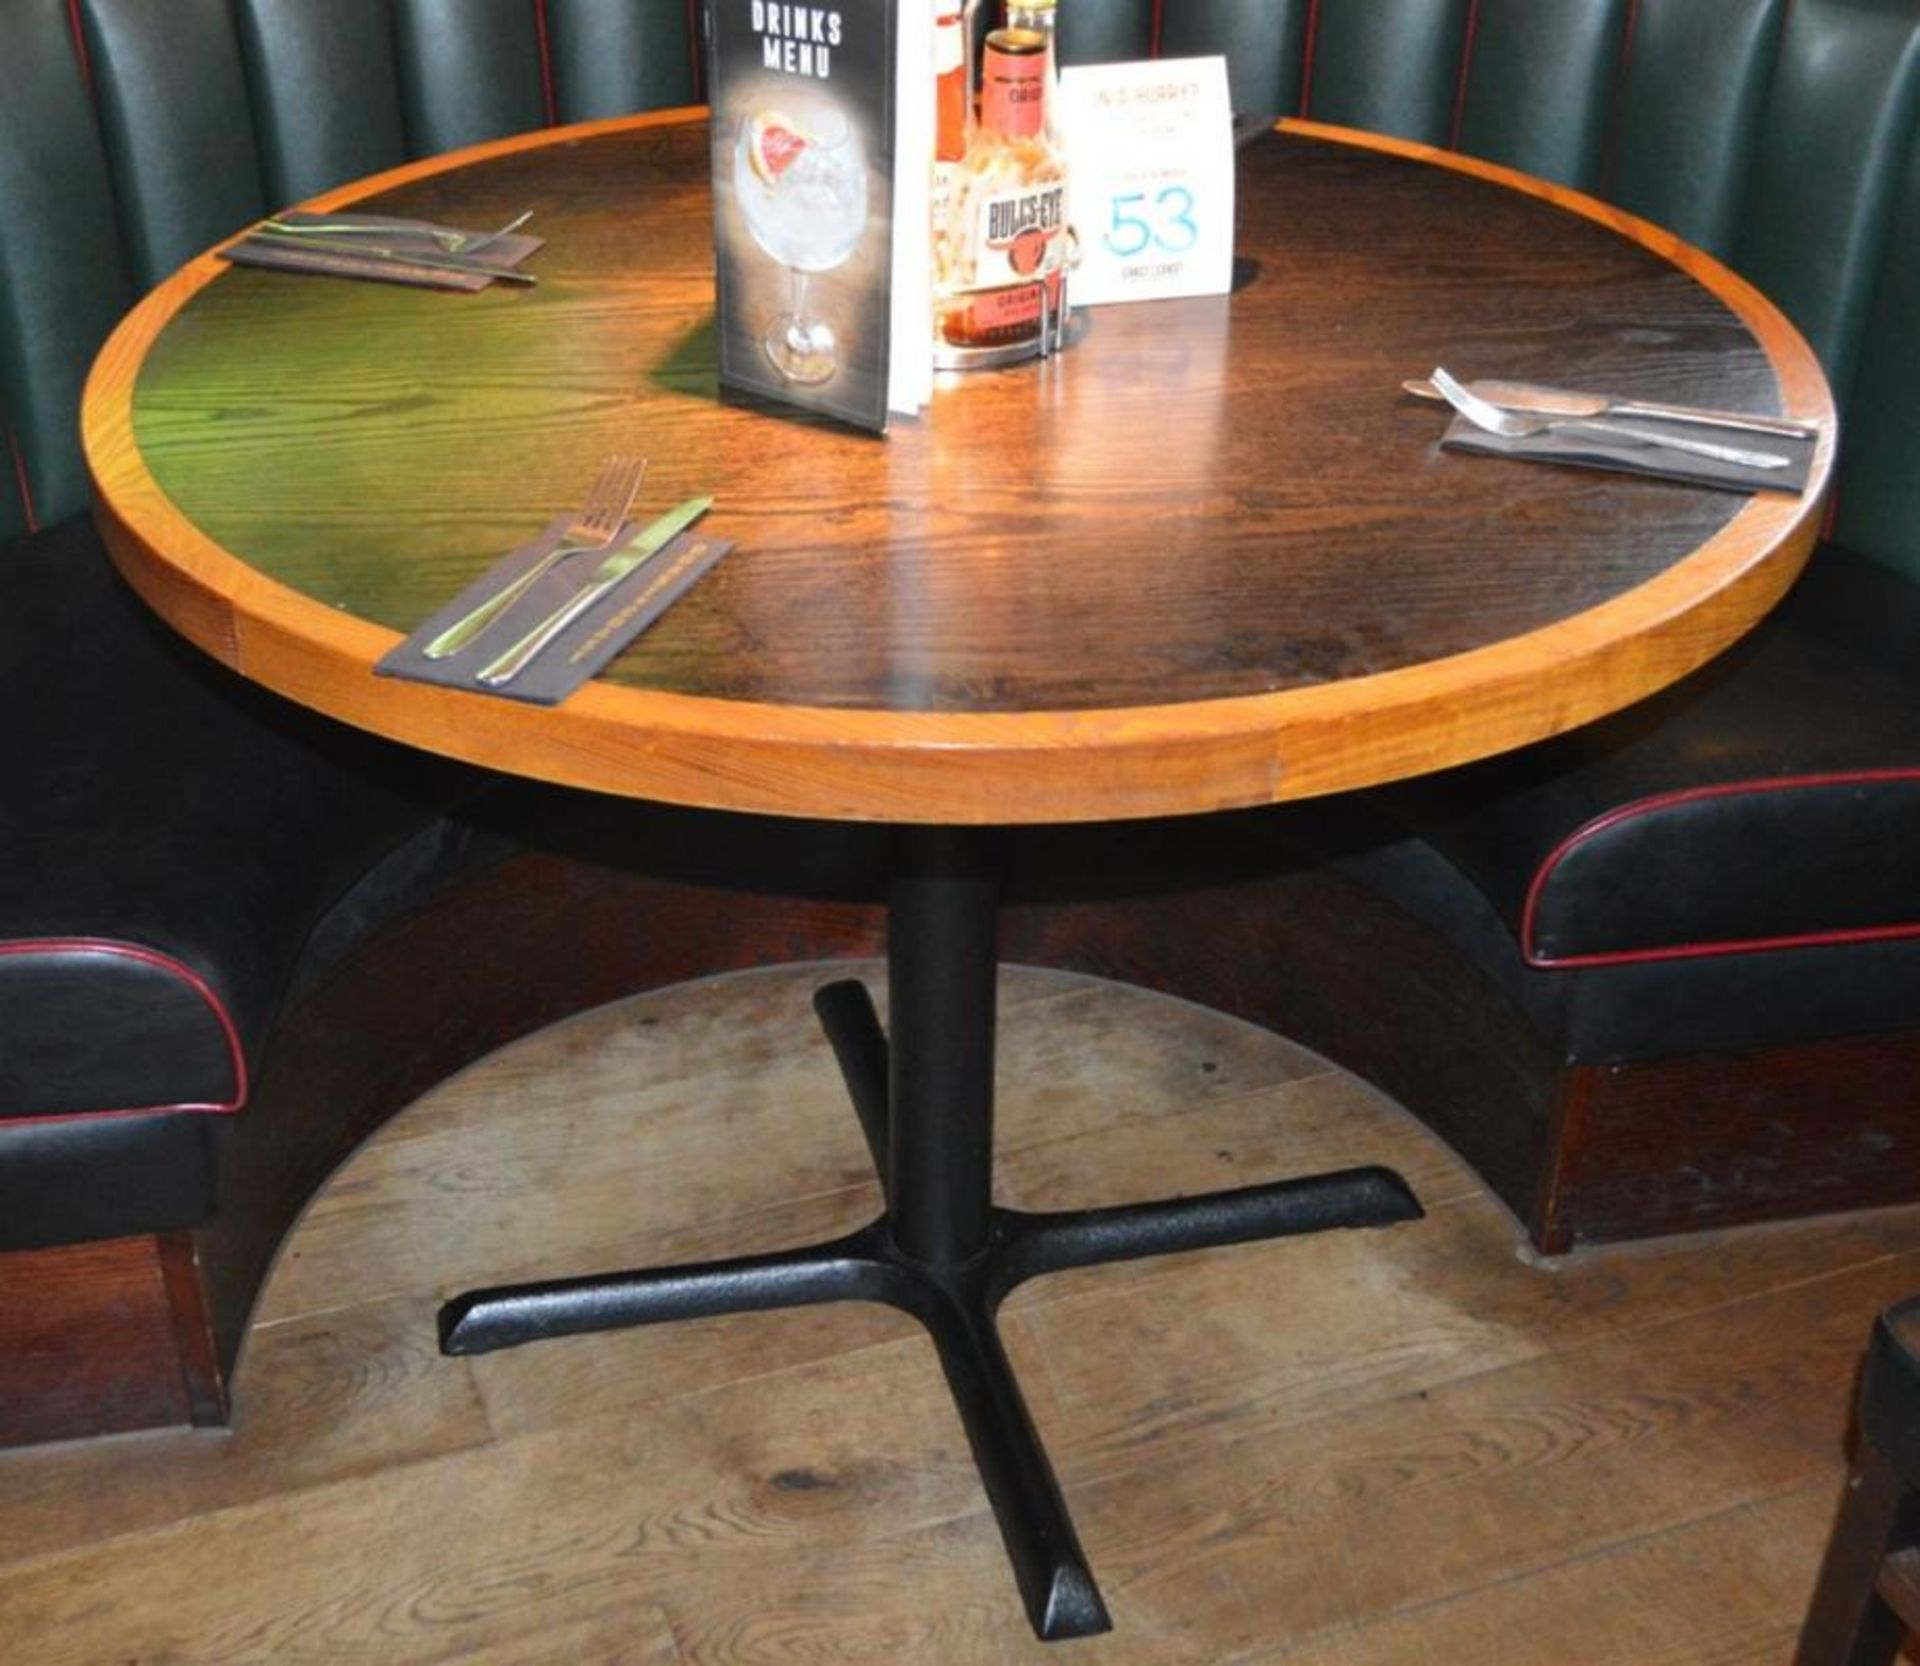 Lot 154 - 1 x Restaurant Dining Table With Cast Iron Base - Two Tone Wooden Finish With Shaped Edges - H76 x